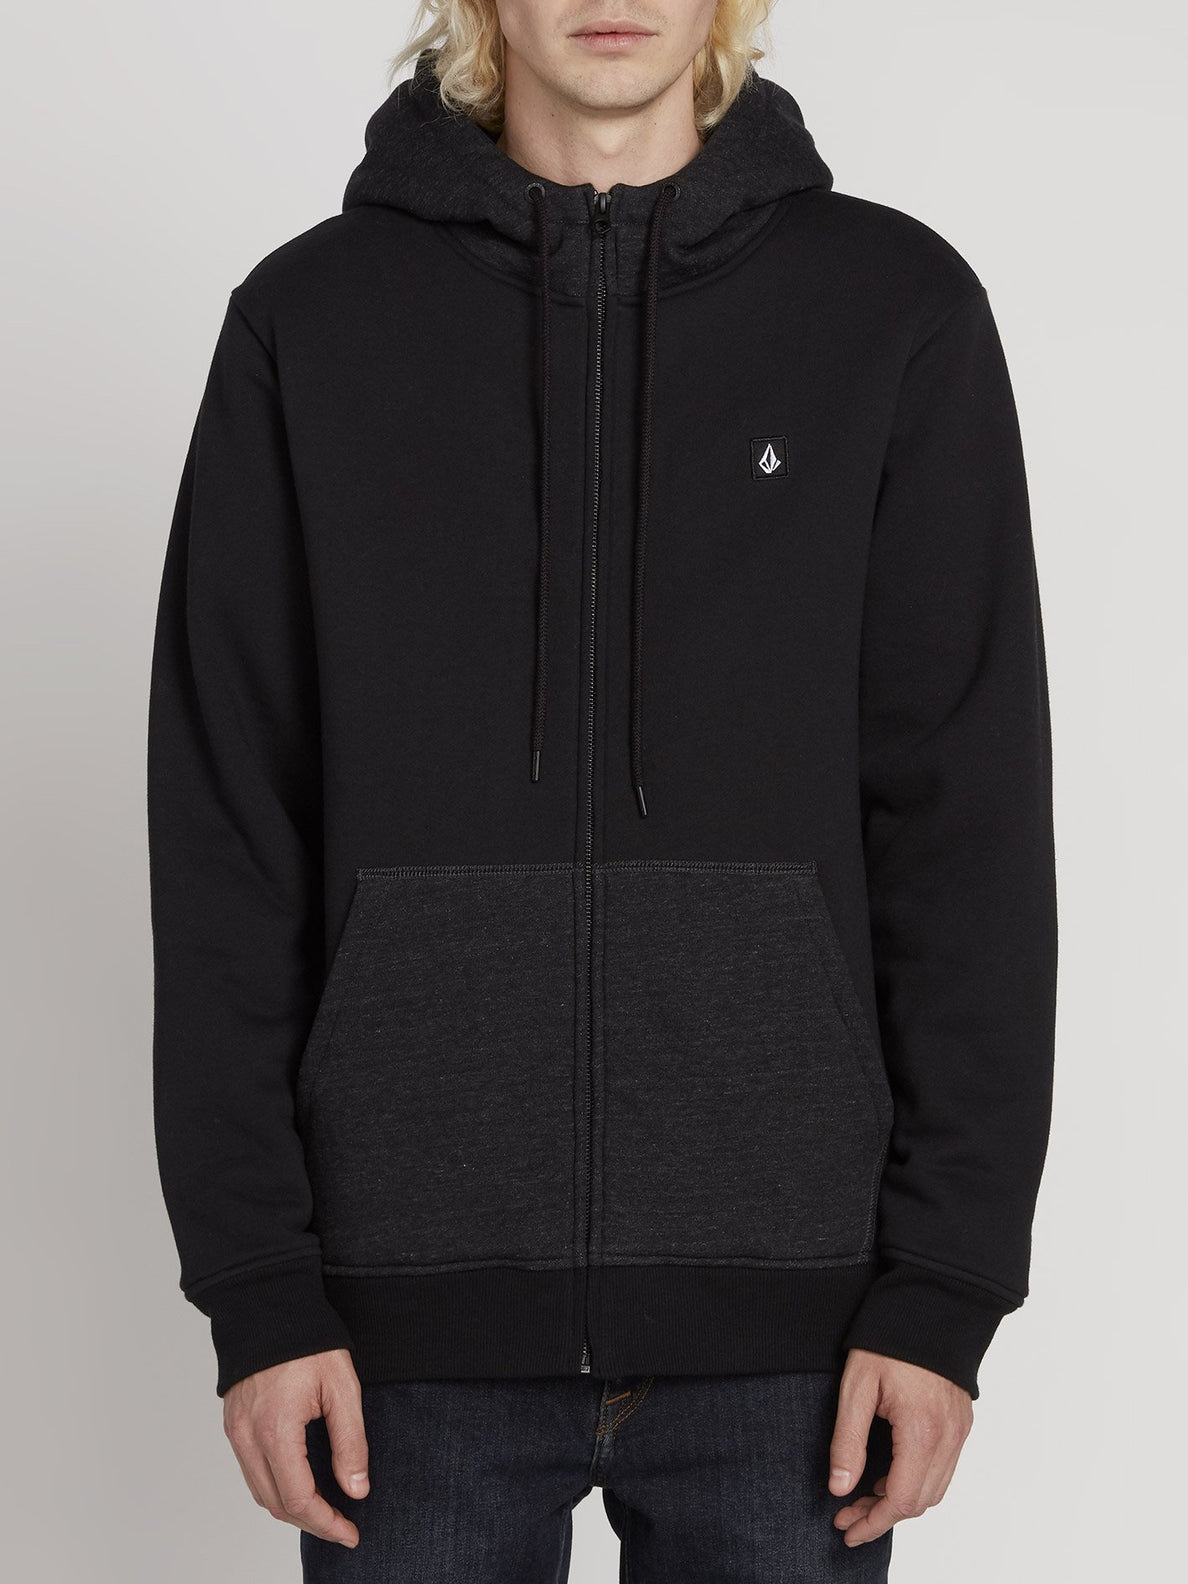 Single Stone Lined Zip Hoodie - Black (A5831900_BLK) [F]